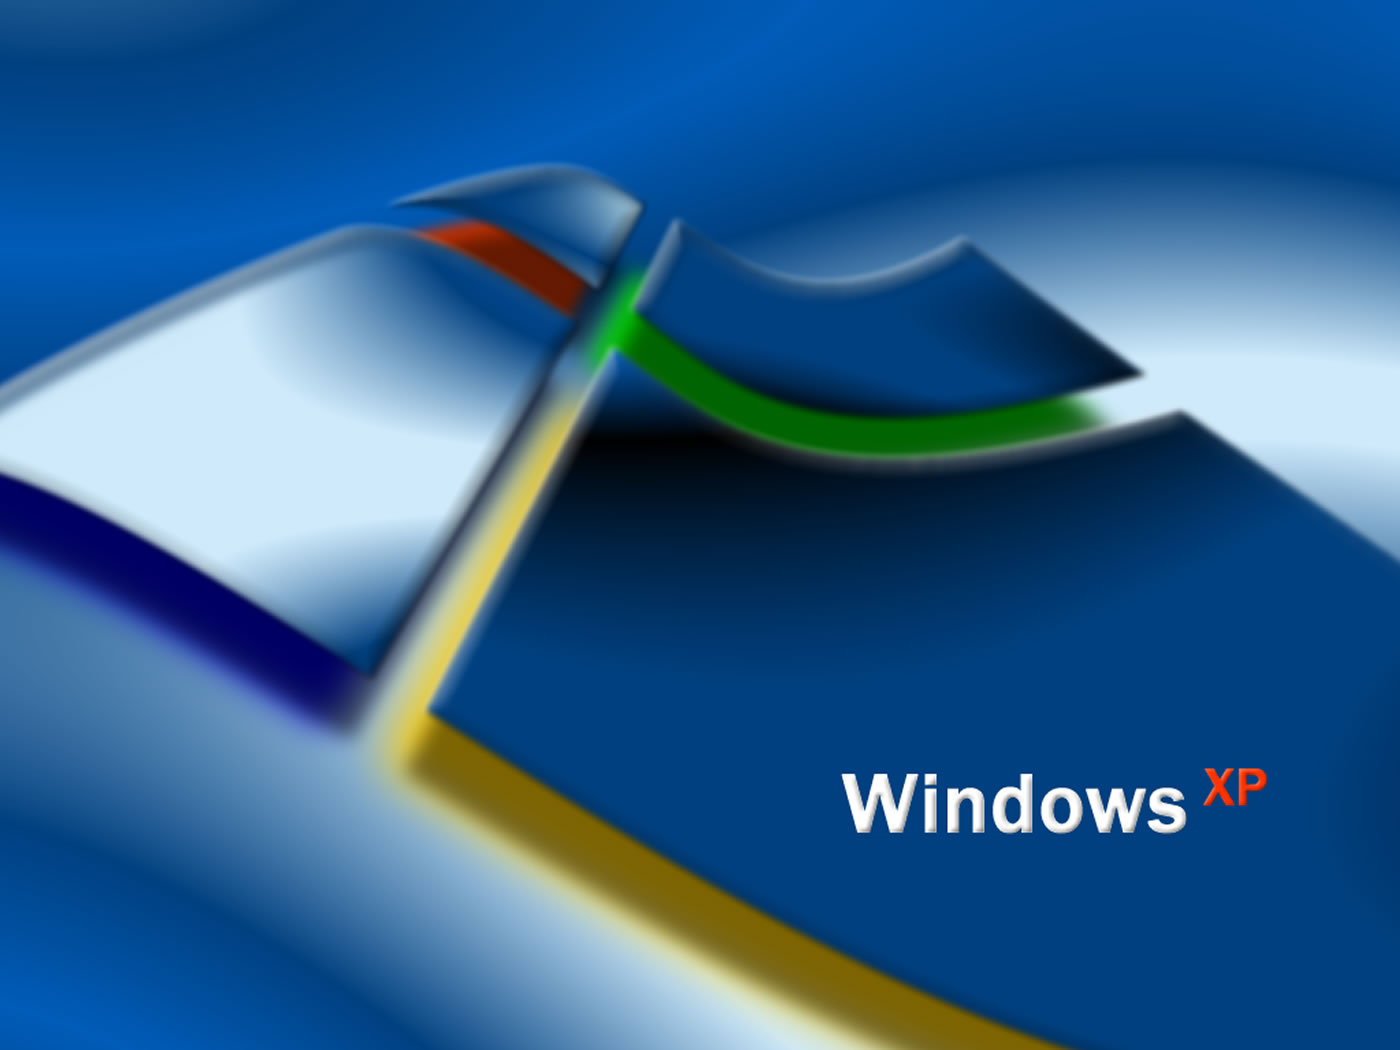 WinXP Wallpaper Enhanced